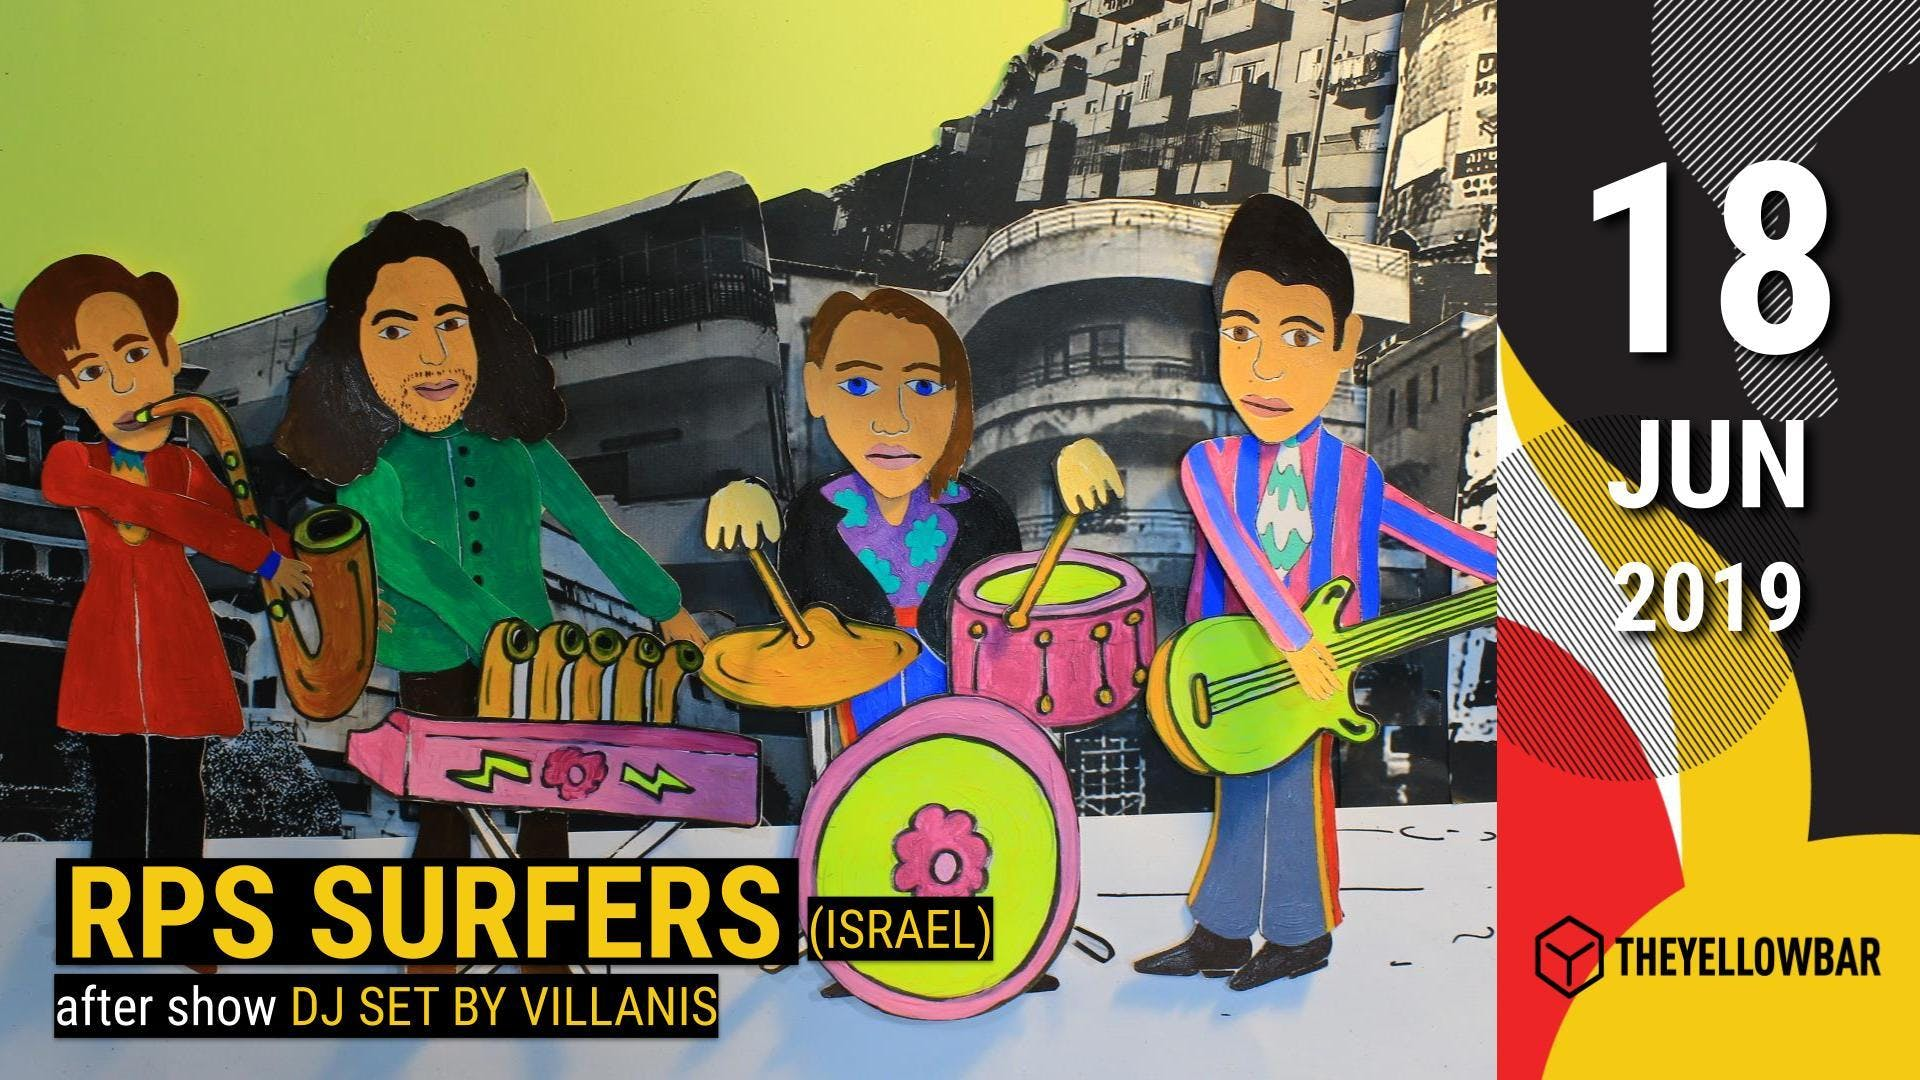 RPS Surfers - The Yellow Bar